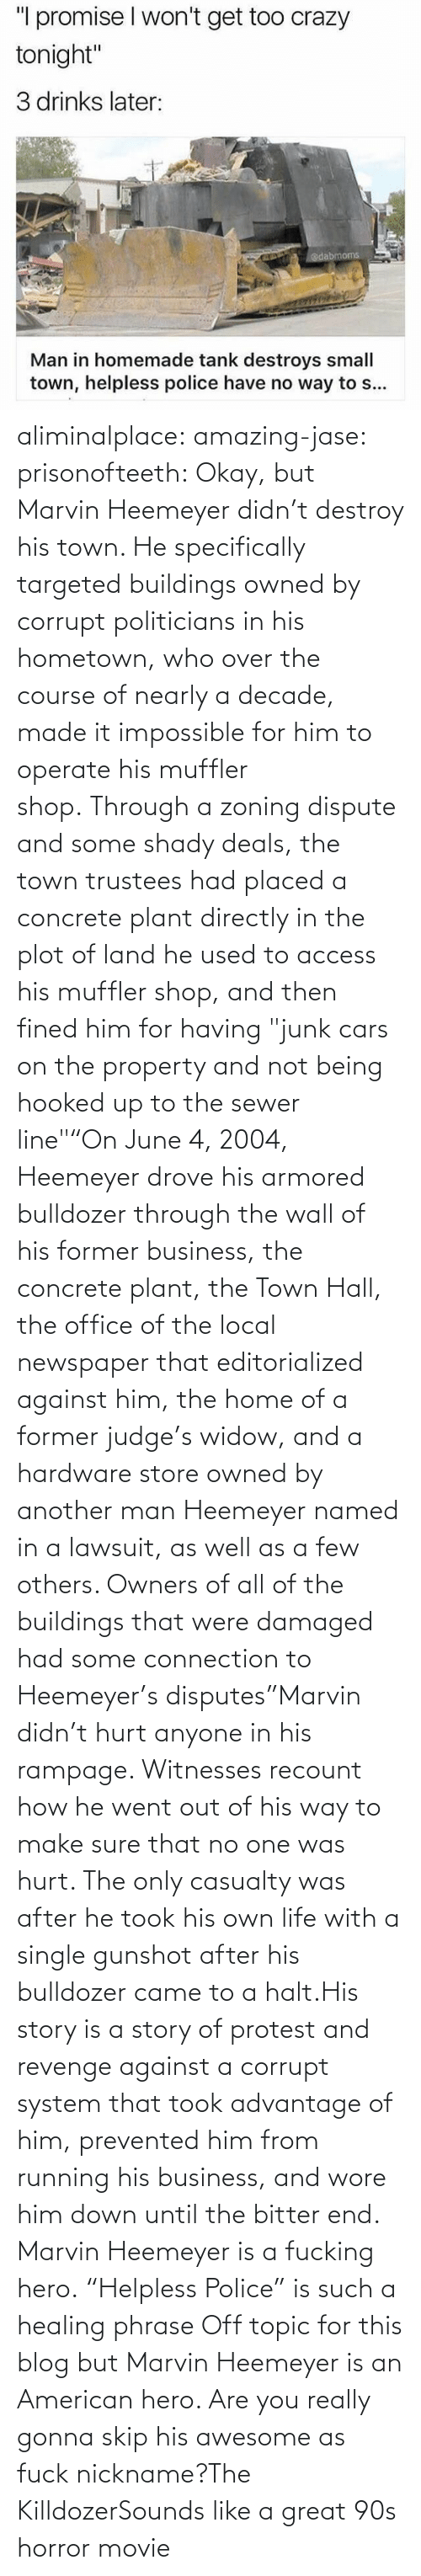 "concrete: aliminalplace: amazing-jase:  prisonofteeth: Okay, but Marvin Heemeyer didn't destroy his town. He specifically targeted buildings owned by corrupt politicians in his hometown, who over the course of nearly a decade, made it impossible for him to operate his muffler shop. Through a zoning dispute and some shady deals, the town trustees had placed a concrete plant directly in the plot of land he used to access his muffler shop, and then fined him for having ""junk cars on the property and not being hooked up to the sewer line""""On June 4, 2004, Heemeyer drove his armored bulldozer through the wall of his former business, the concrete plant, the Town Hall, the office of the local newspaper that editorialized against him, the home of a former judge's widow, and a hardware store owned by another man Heemeyer named in a lawsuit, as well as a few others. Owners of all of the buildings that were damaged had some connection to Heemeyer's disputes""Marvin didn't hurt anyone in his rampage. Witnesses recount how he went out of his way to make sure that no one was hurt. The only casualty was after he took his own life with a single gunshot after his bulldozer came to a halt.His story is a story of protest and revenge against a corrupt system that took advantage of him, prevented him from running his business, and wore him down until the bitter end. Marvin Heemeyer is a fucking hero. ""Helpless Police"" is such a healing phrase    Off topic for this blog but Marvin Heemeyer is an American hero.     Are you really gonna skip his awesome as fuck nickname?The KilldozerSounds like a great 90s horror movie"